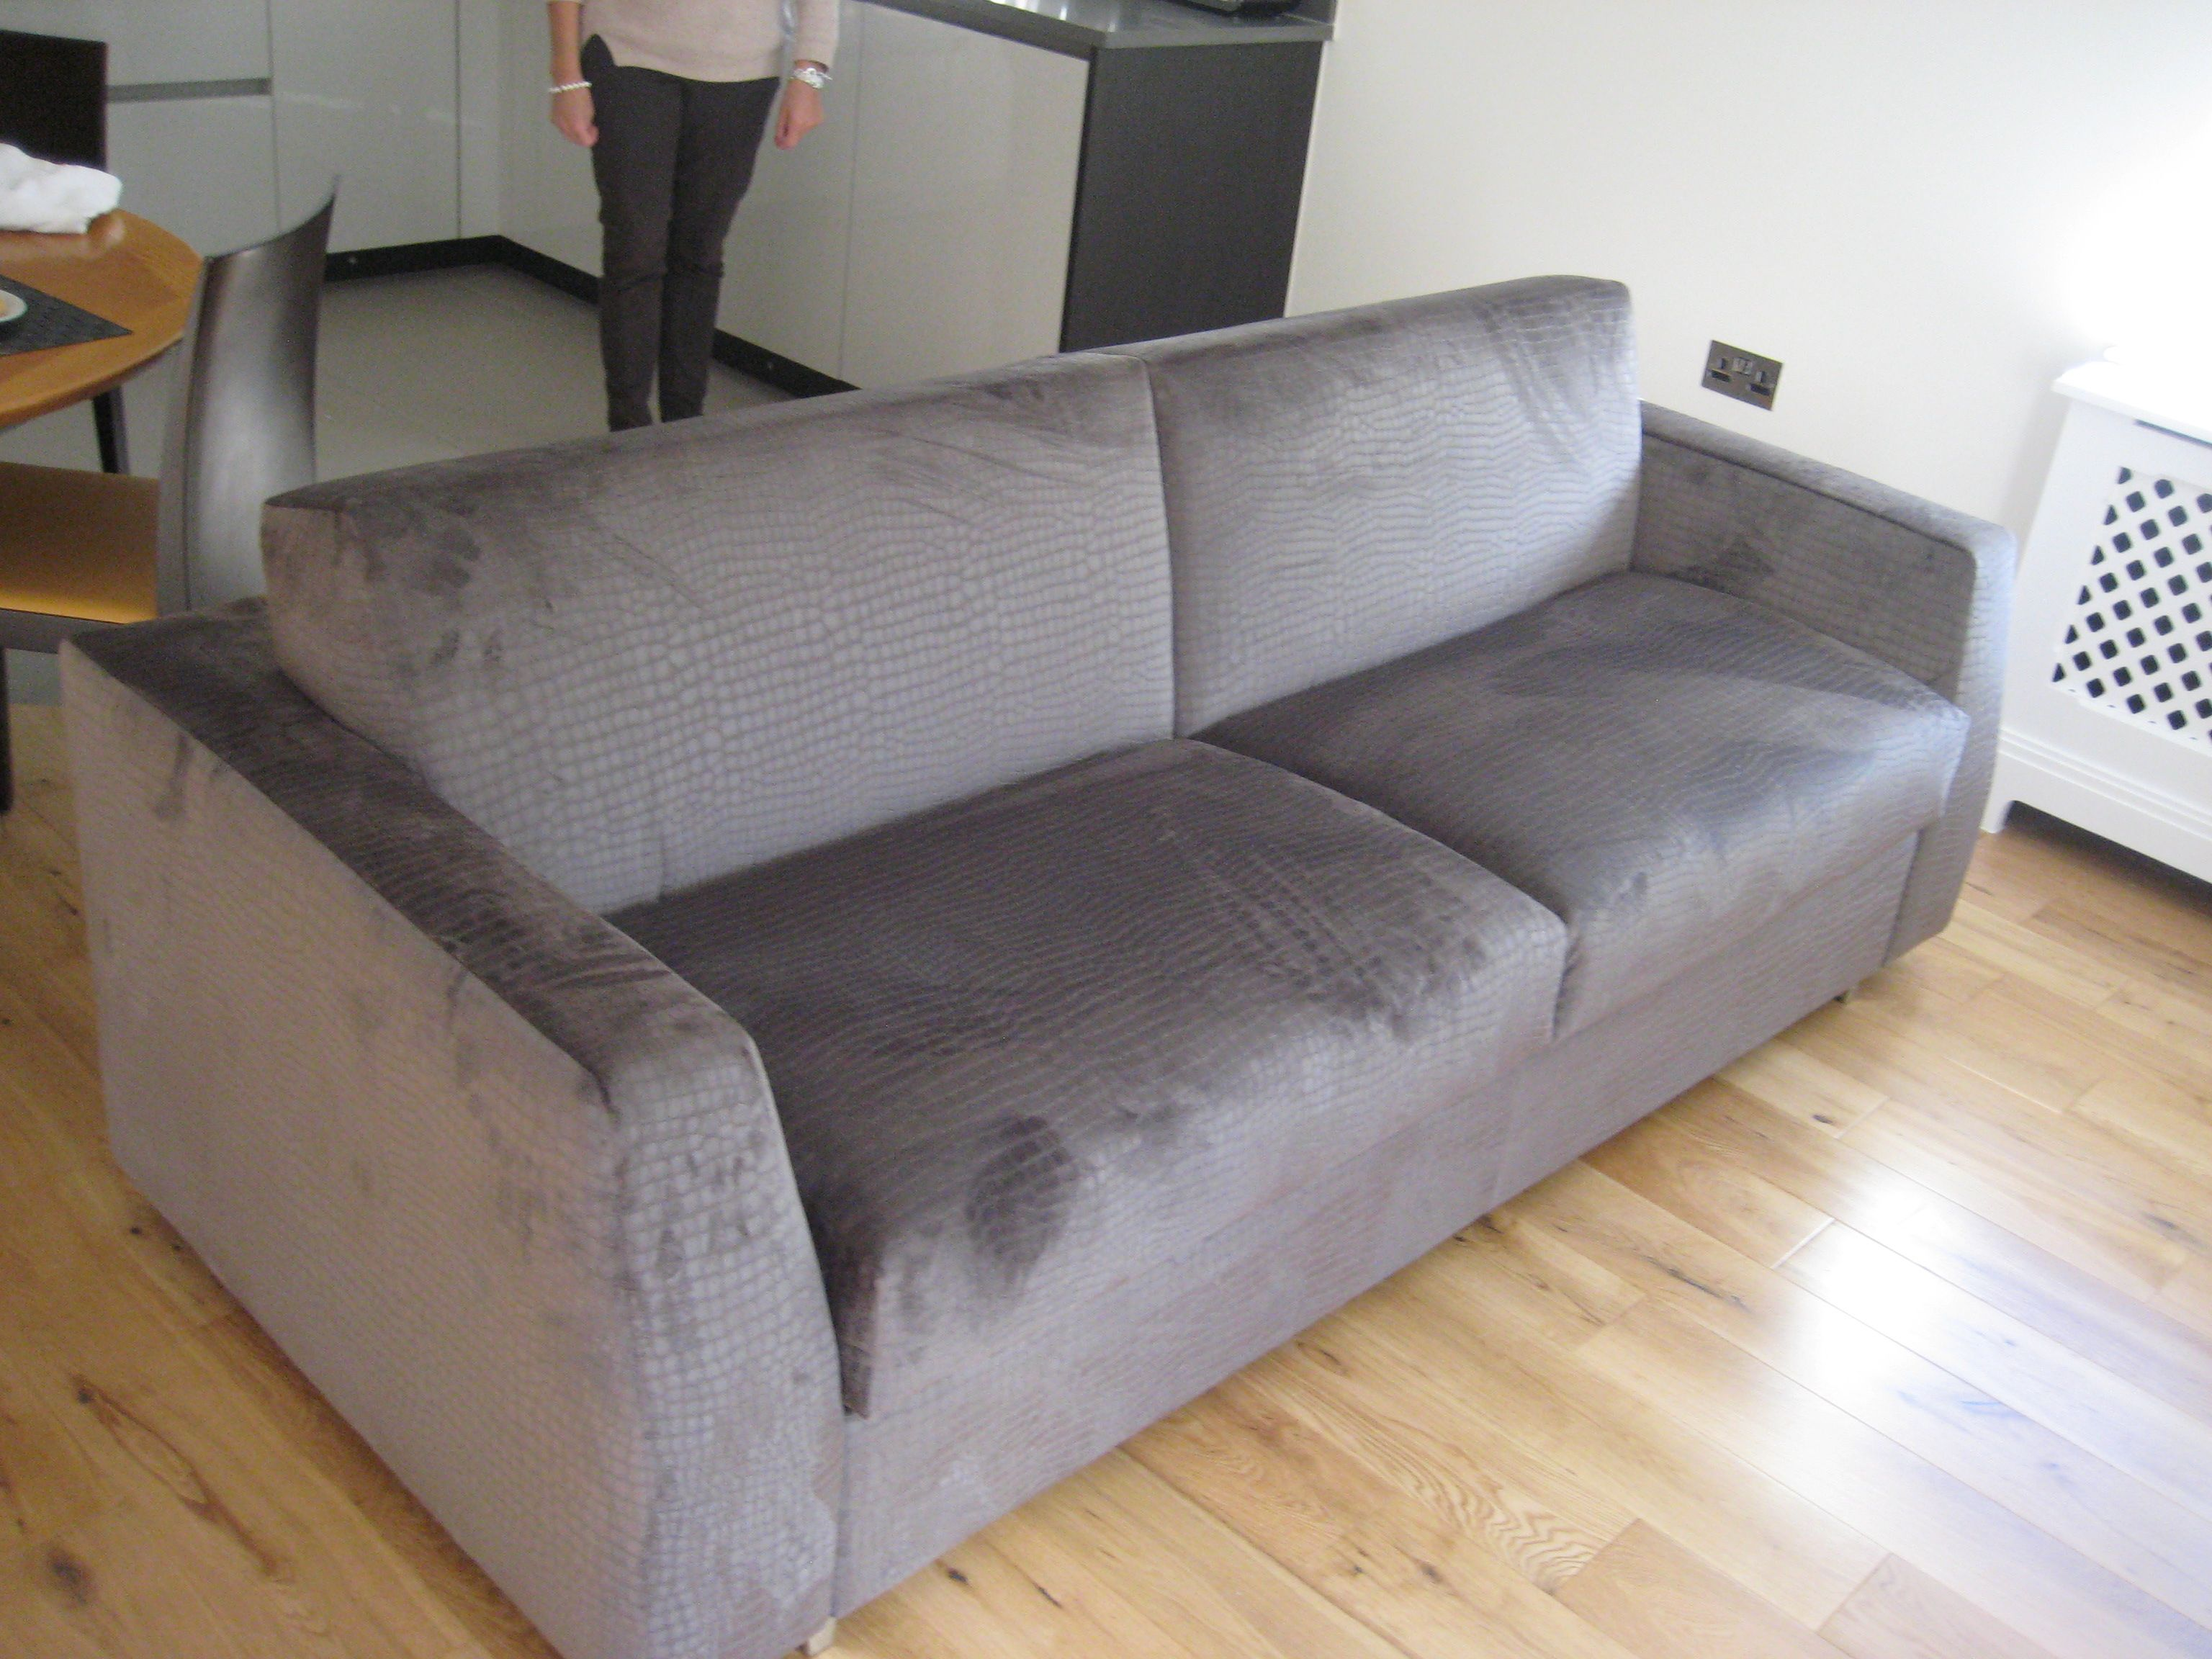 Italian luxury sofabed Spluga 3 seat sofa bed which measures 217